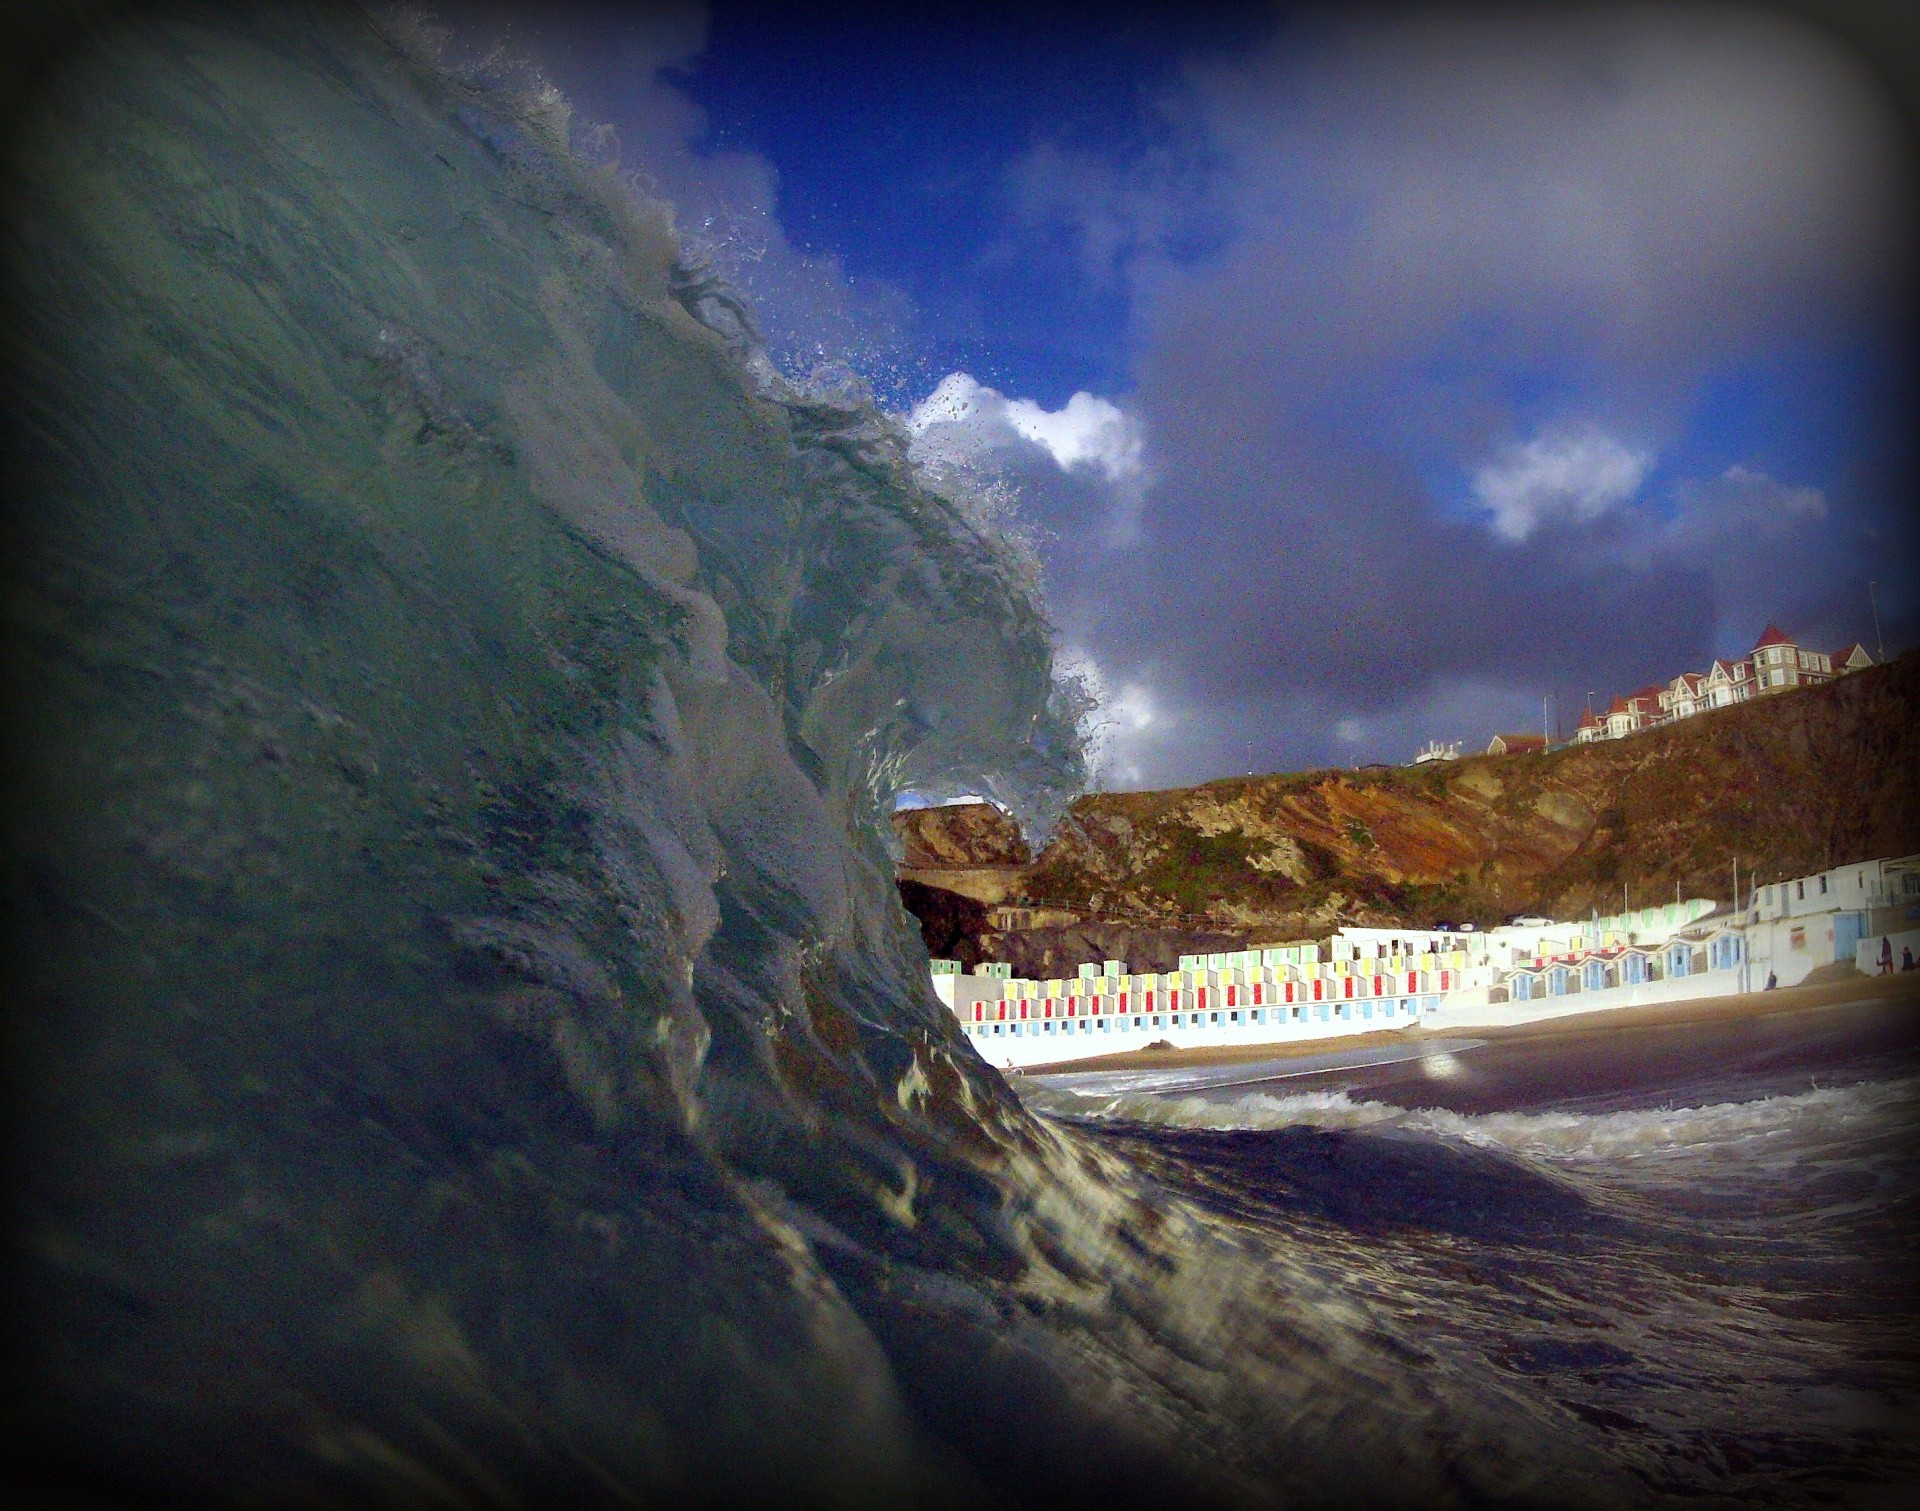 Ben Plant's photo of Newquay - Tolcarne Wedge